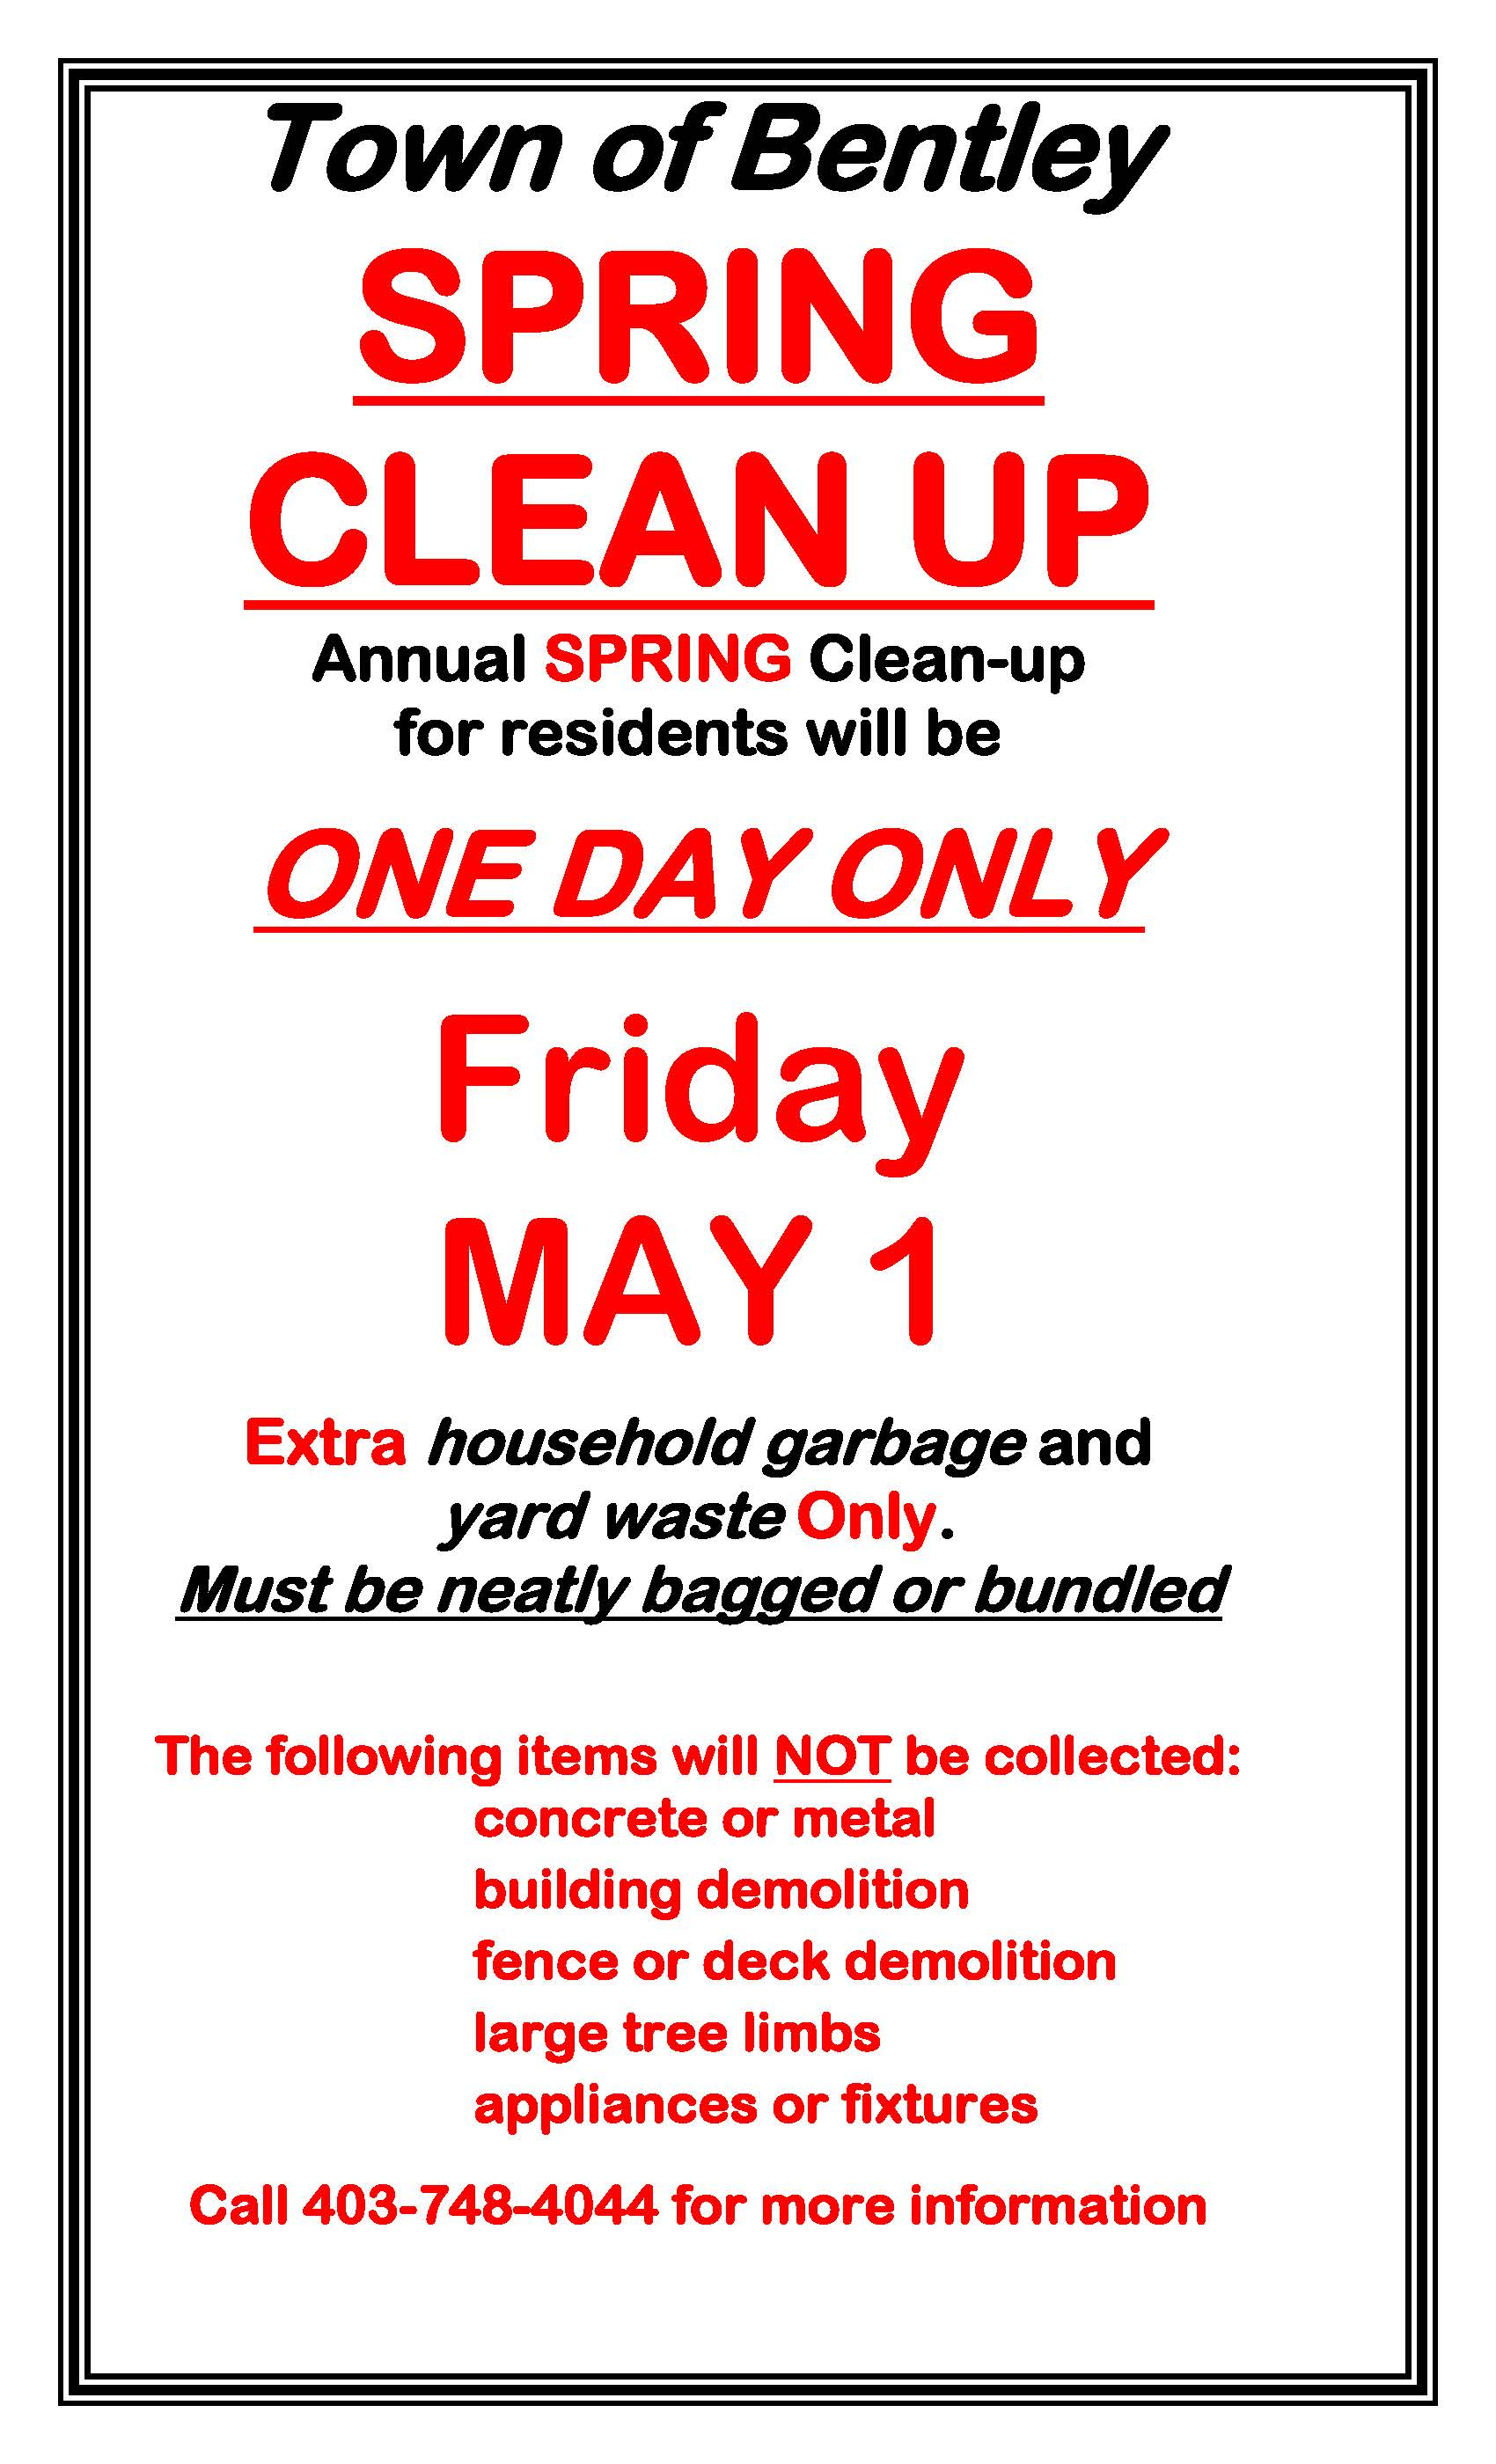 Spring Clean Up Poster 2015.jpg